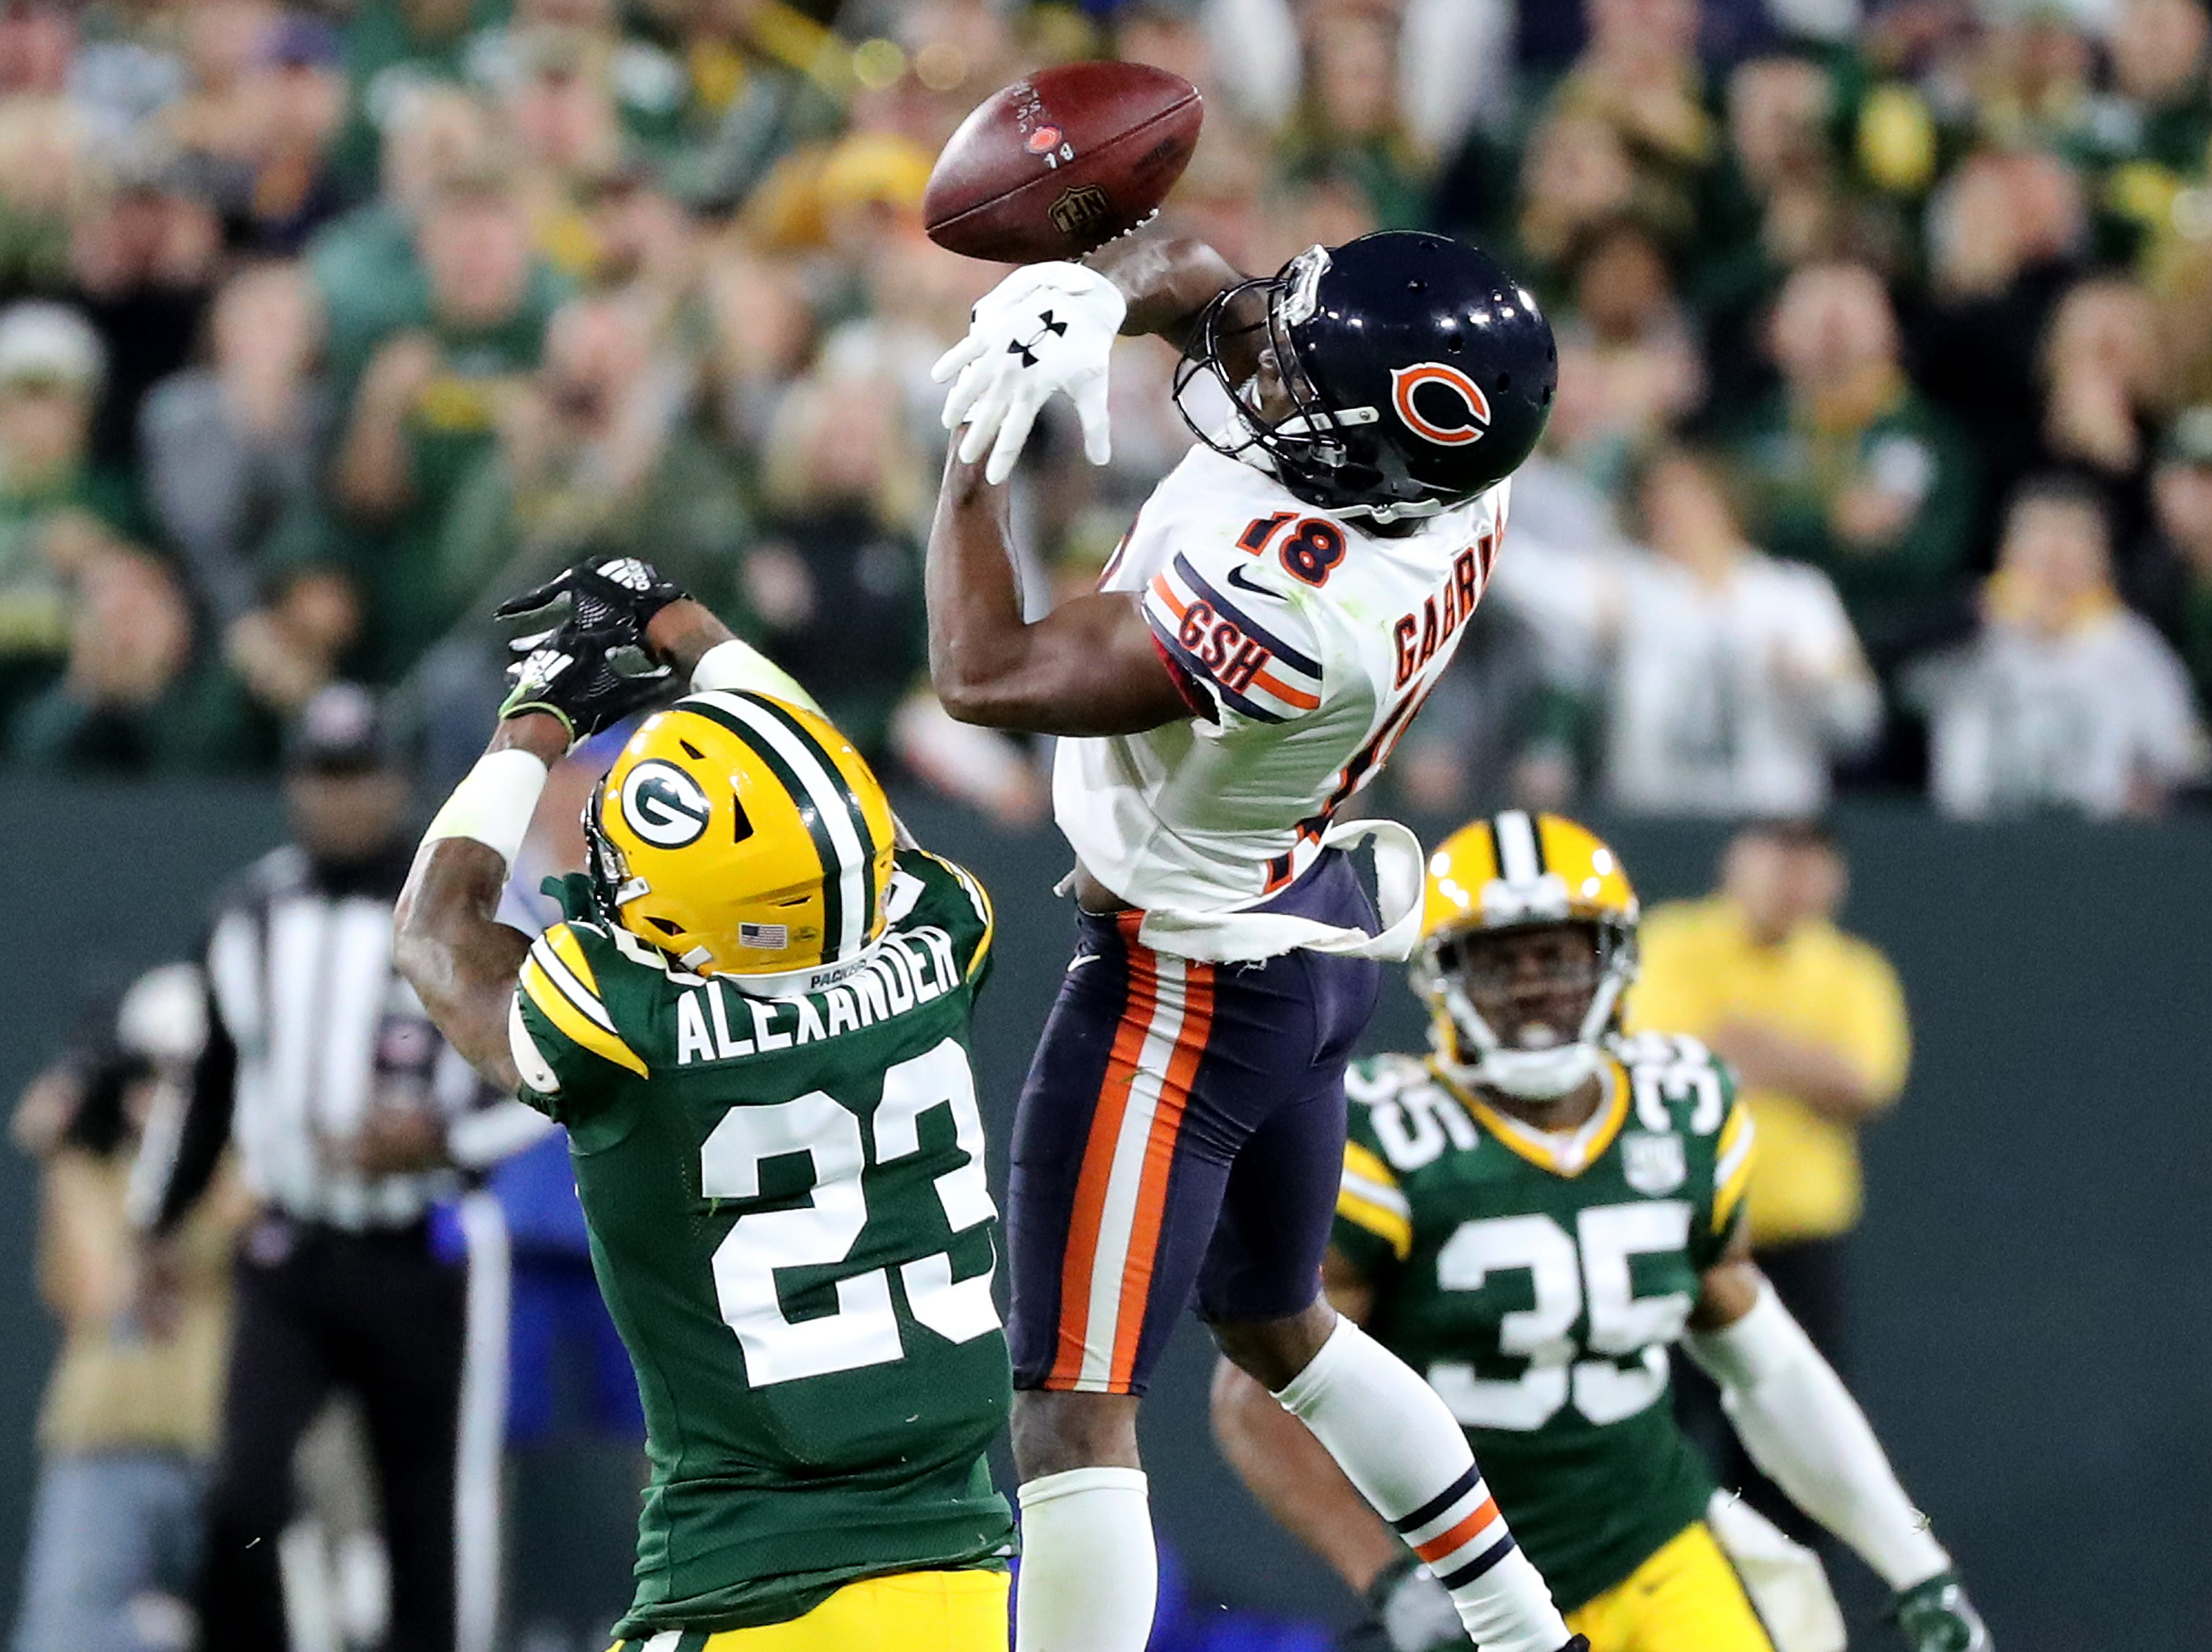 Green Bay Packers cornerback Jaire Alexander (23) defends a pass to wide receiver Taylor Gabriel (18) in the fourth quarter against the Chicago Bears Sunday, September 9, 2018 at Lambeau Field in Green Bay, Wis.